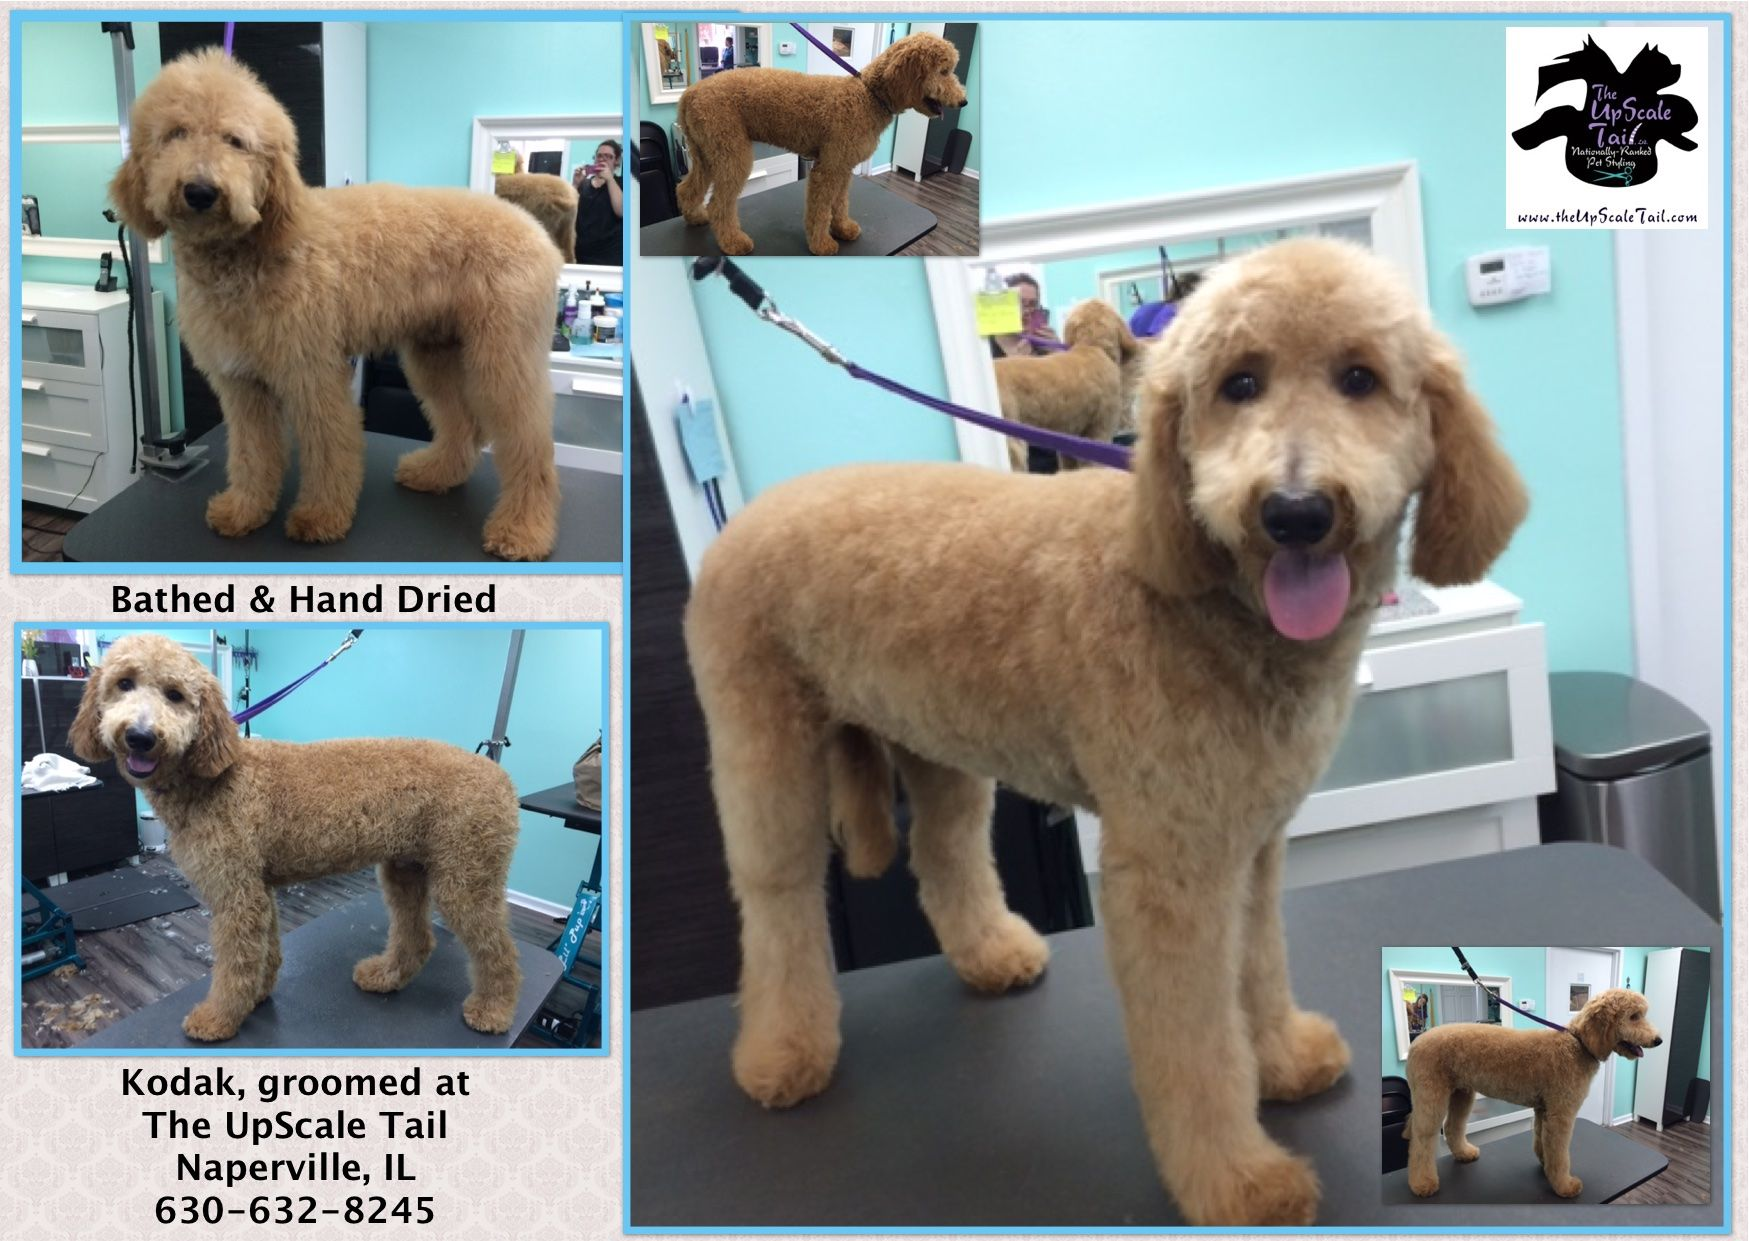 Kodak, groomed at The UpScale Tail, Naperville, IL Pet